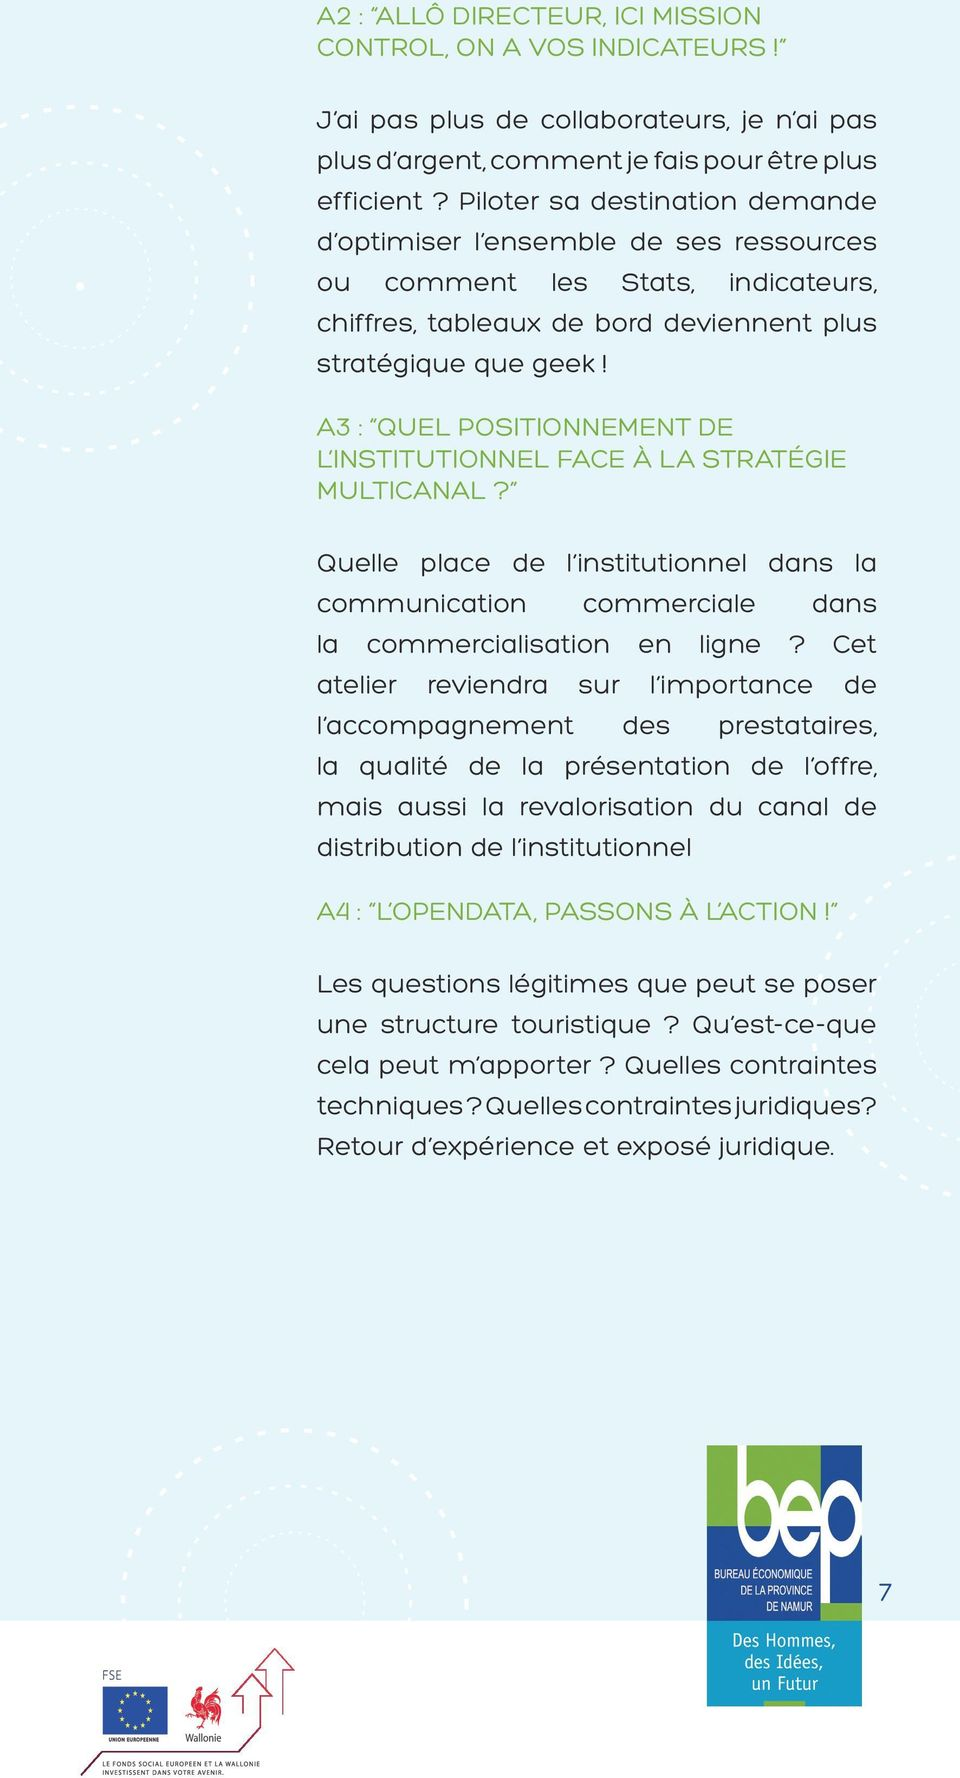 A3 : Quel positionnement de l institutionnel face à la stratégie multicanal? Quelle place de l institutionnel dans la communication commerciale dans la commercialisation en ligne?